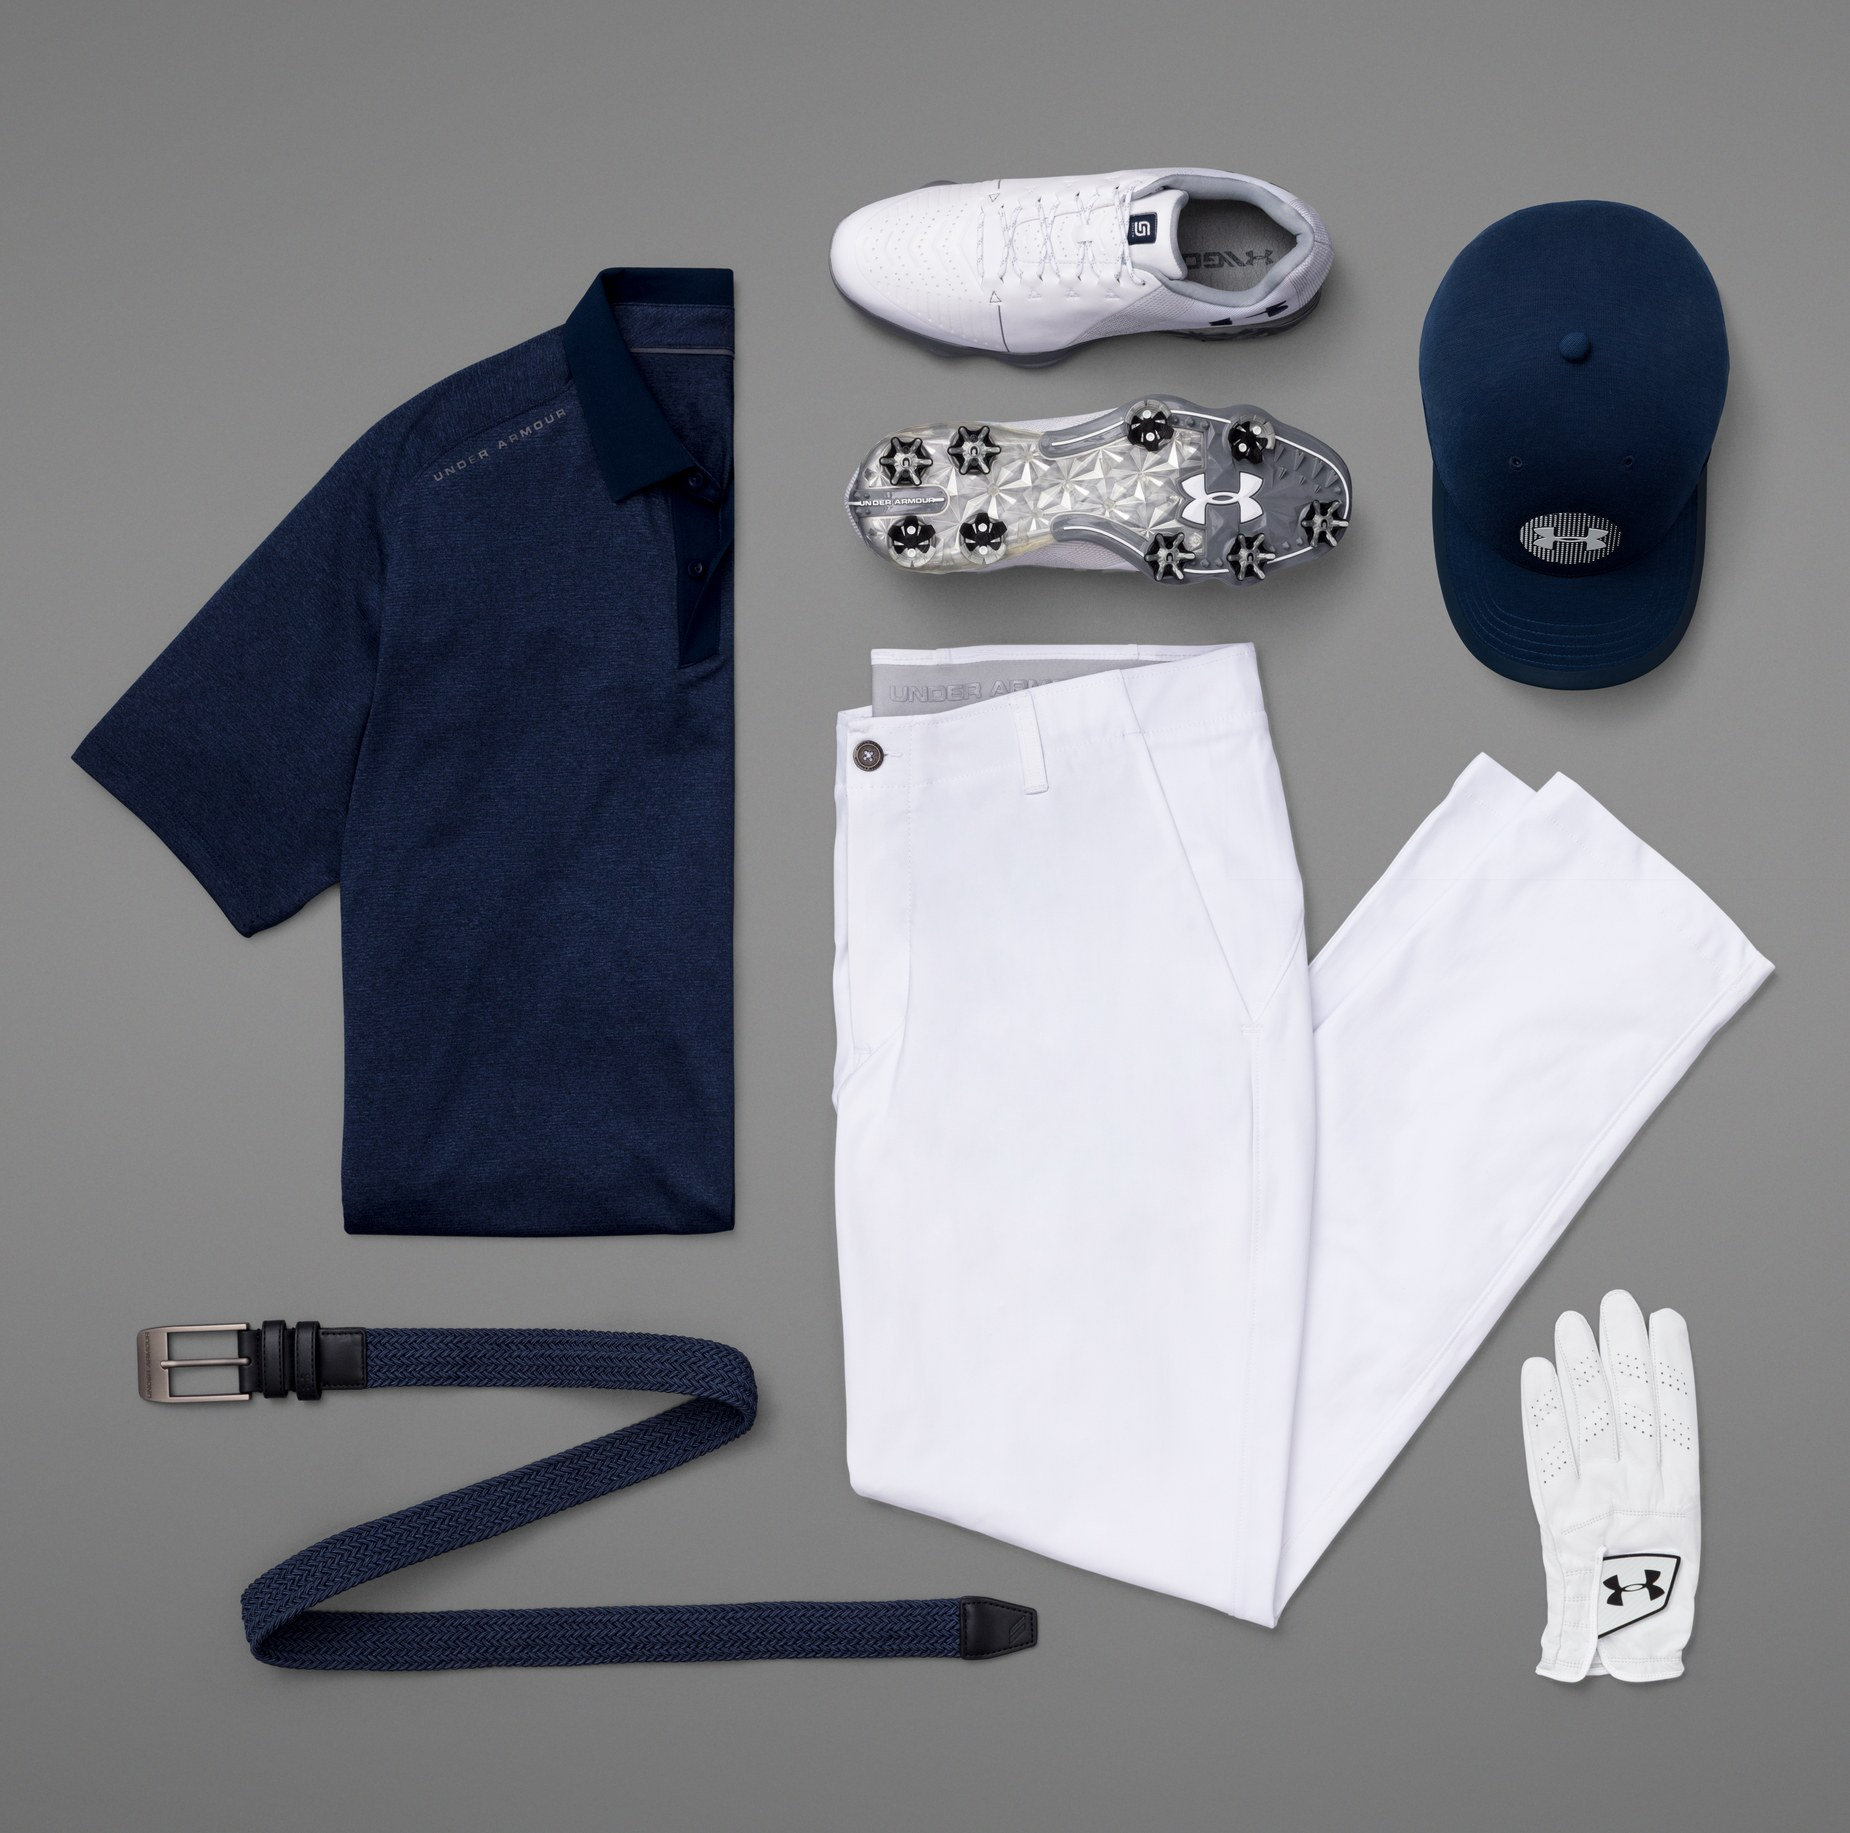 UA Kit for 2018 U.S. Open - Friday